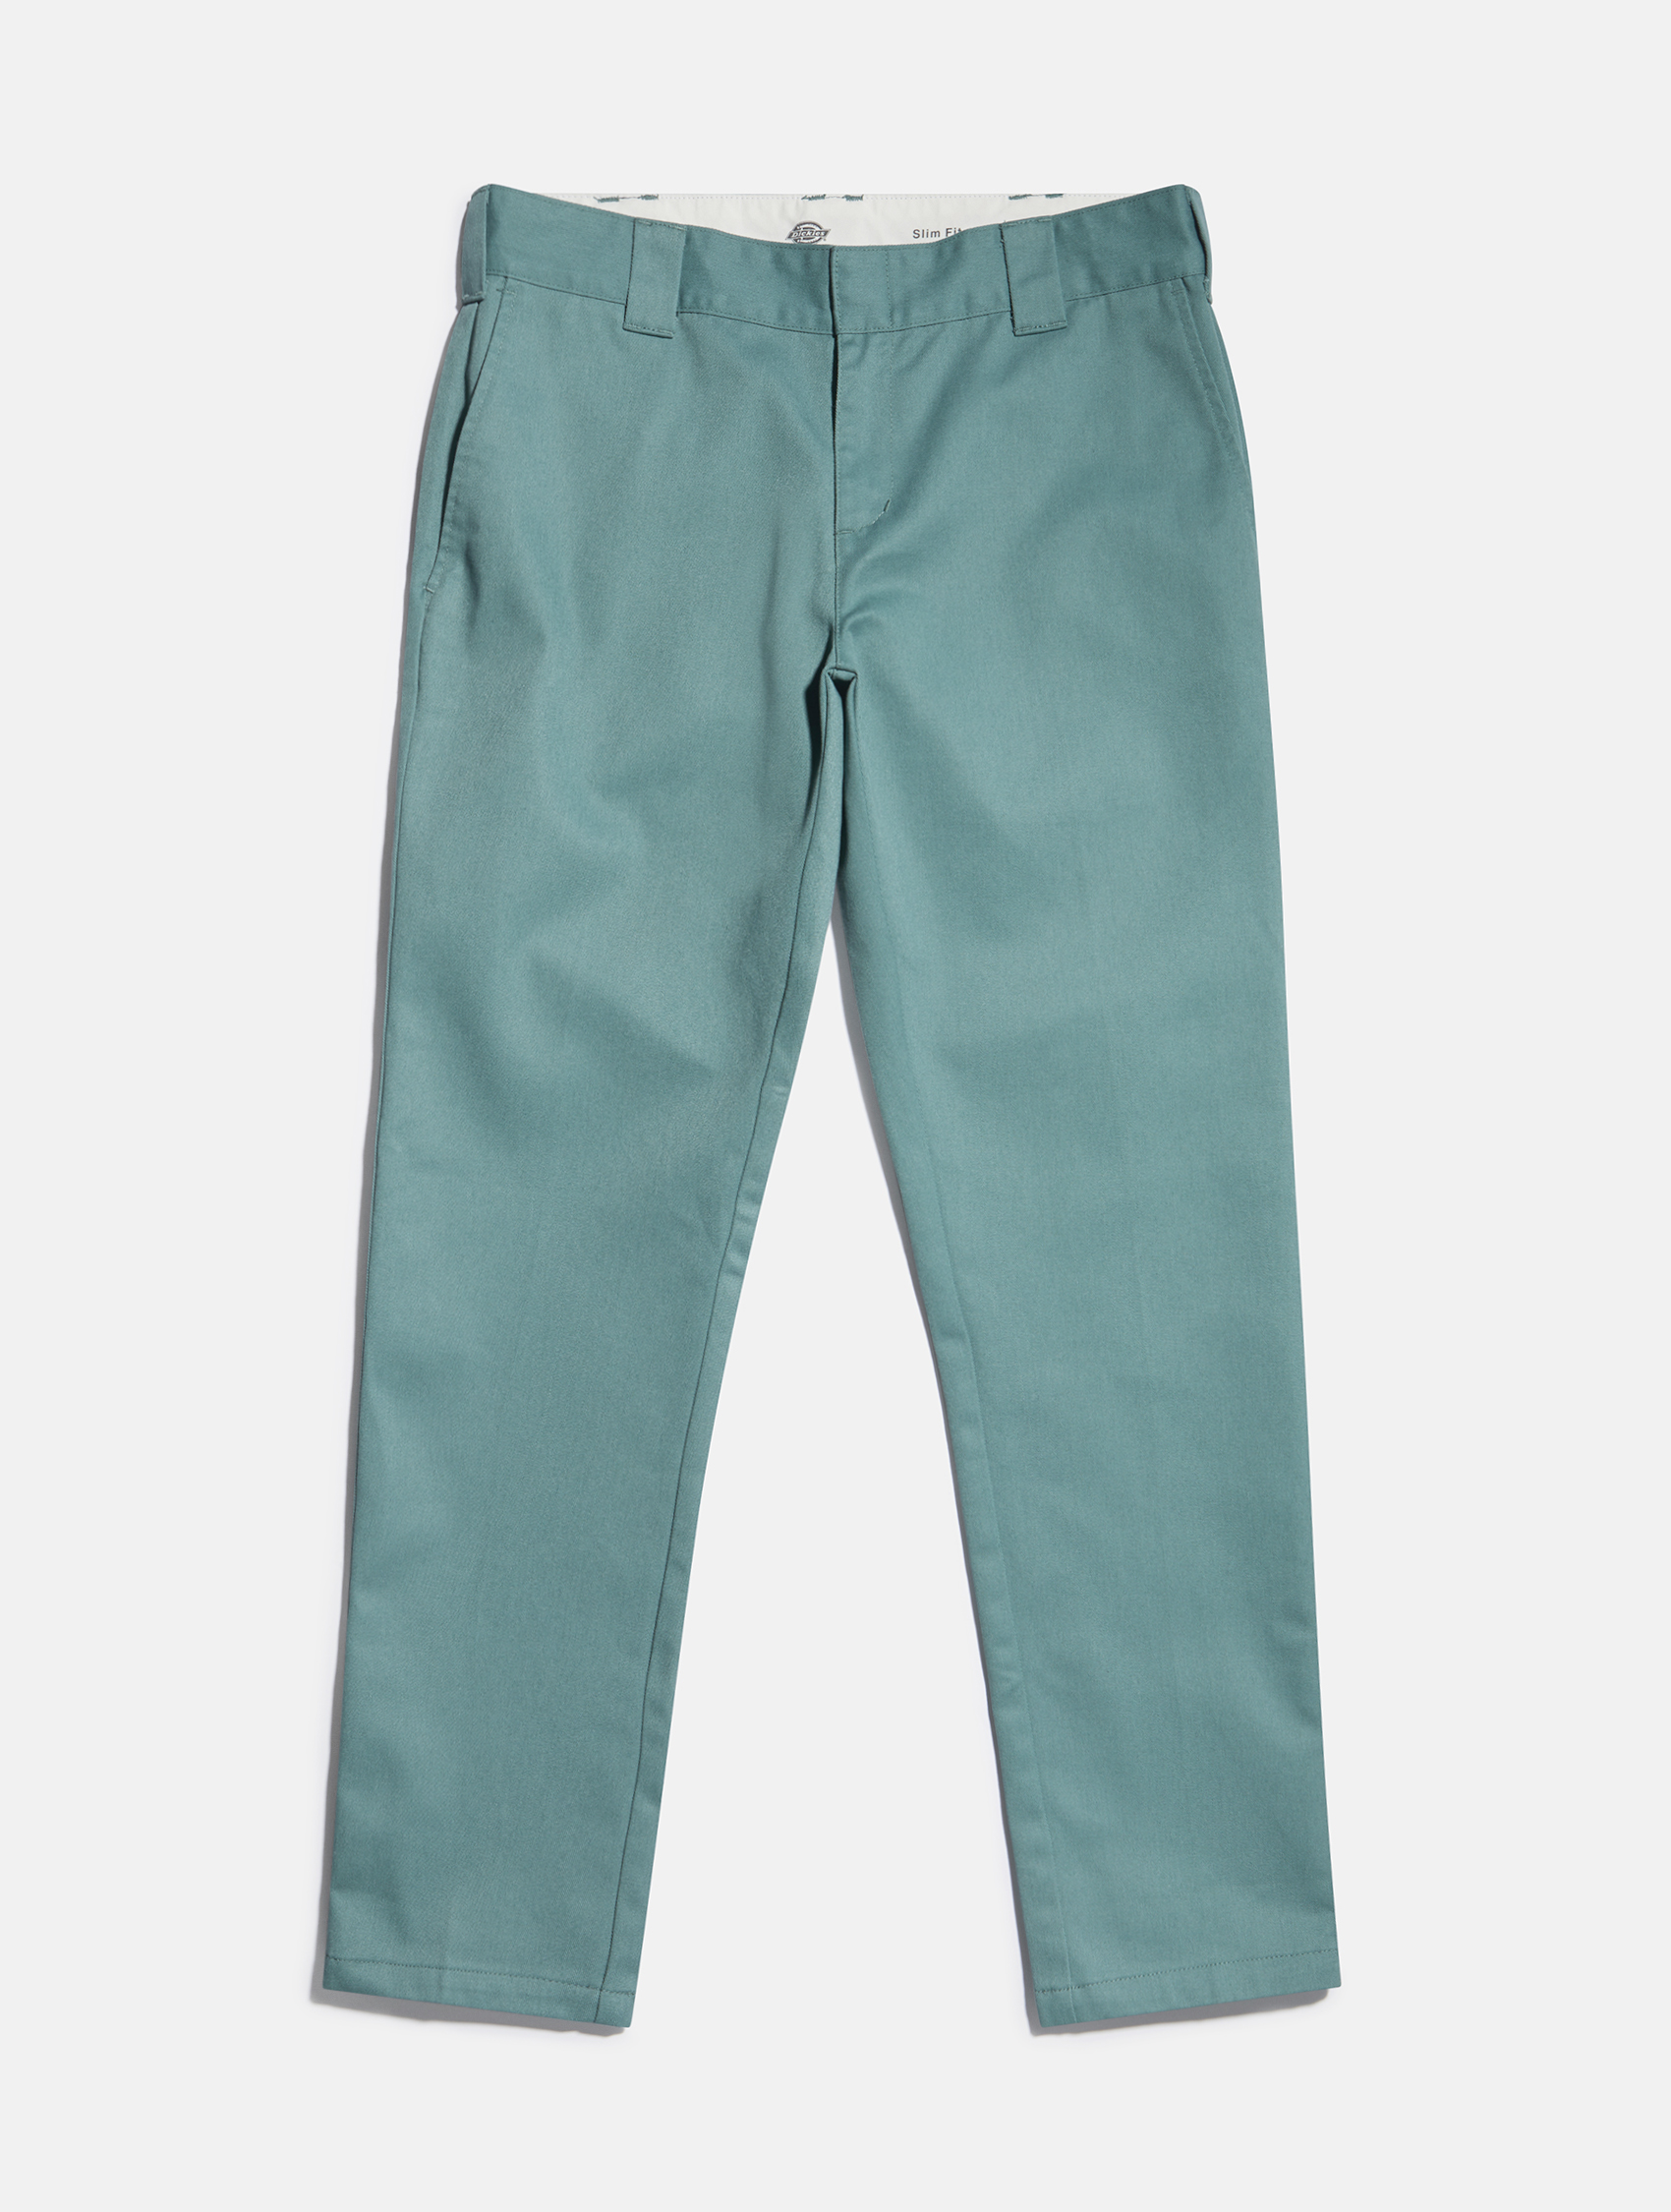 Light green,blue trousers by Dickies